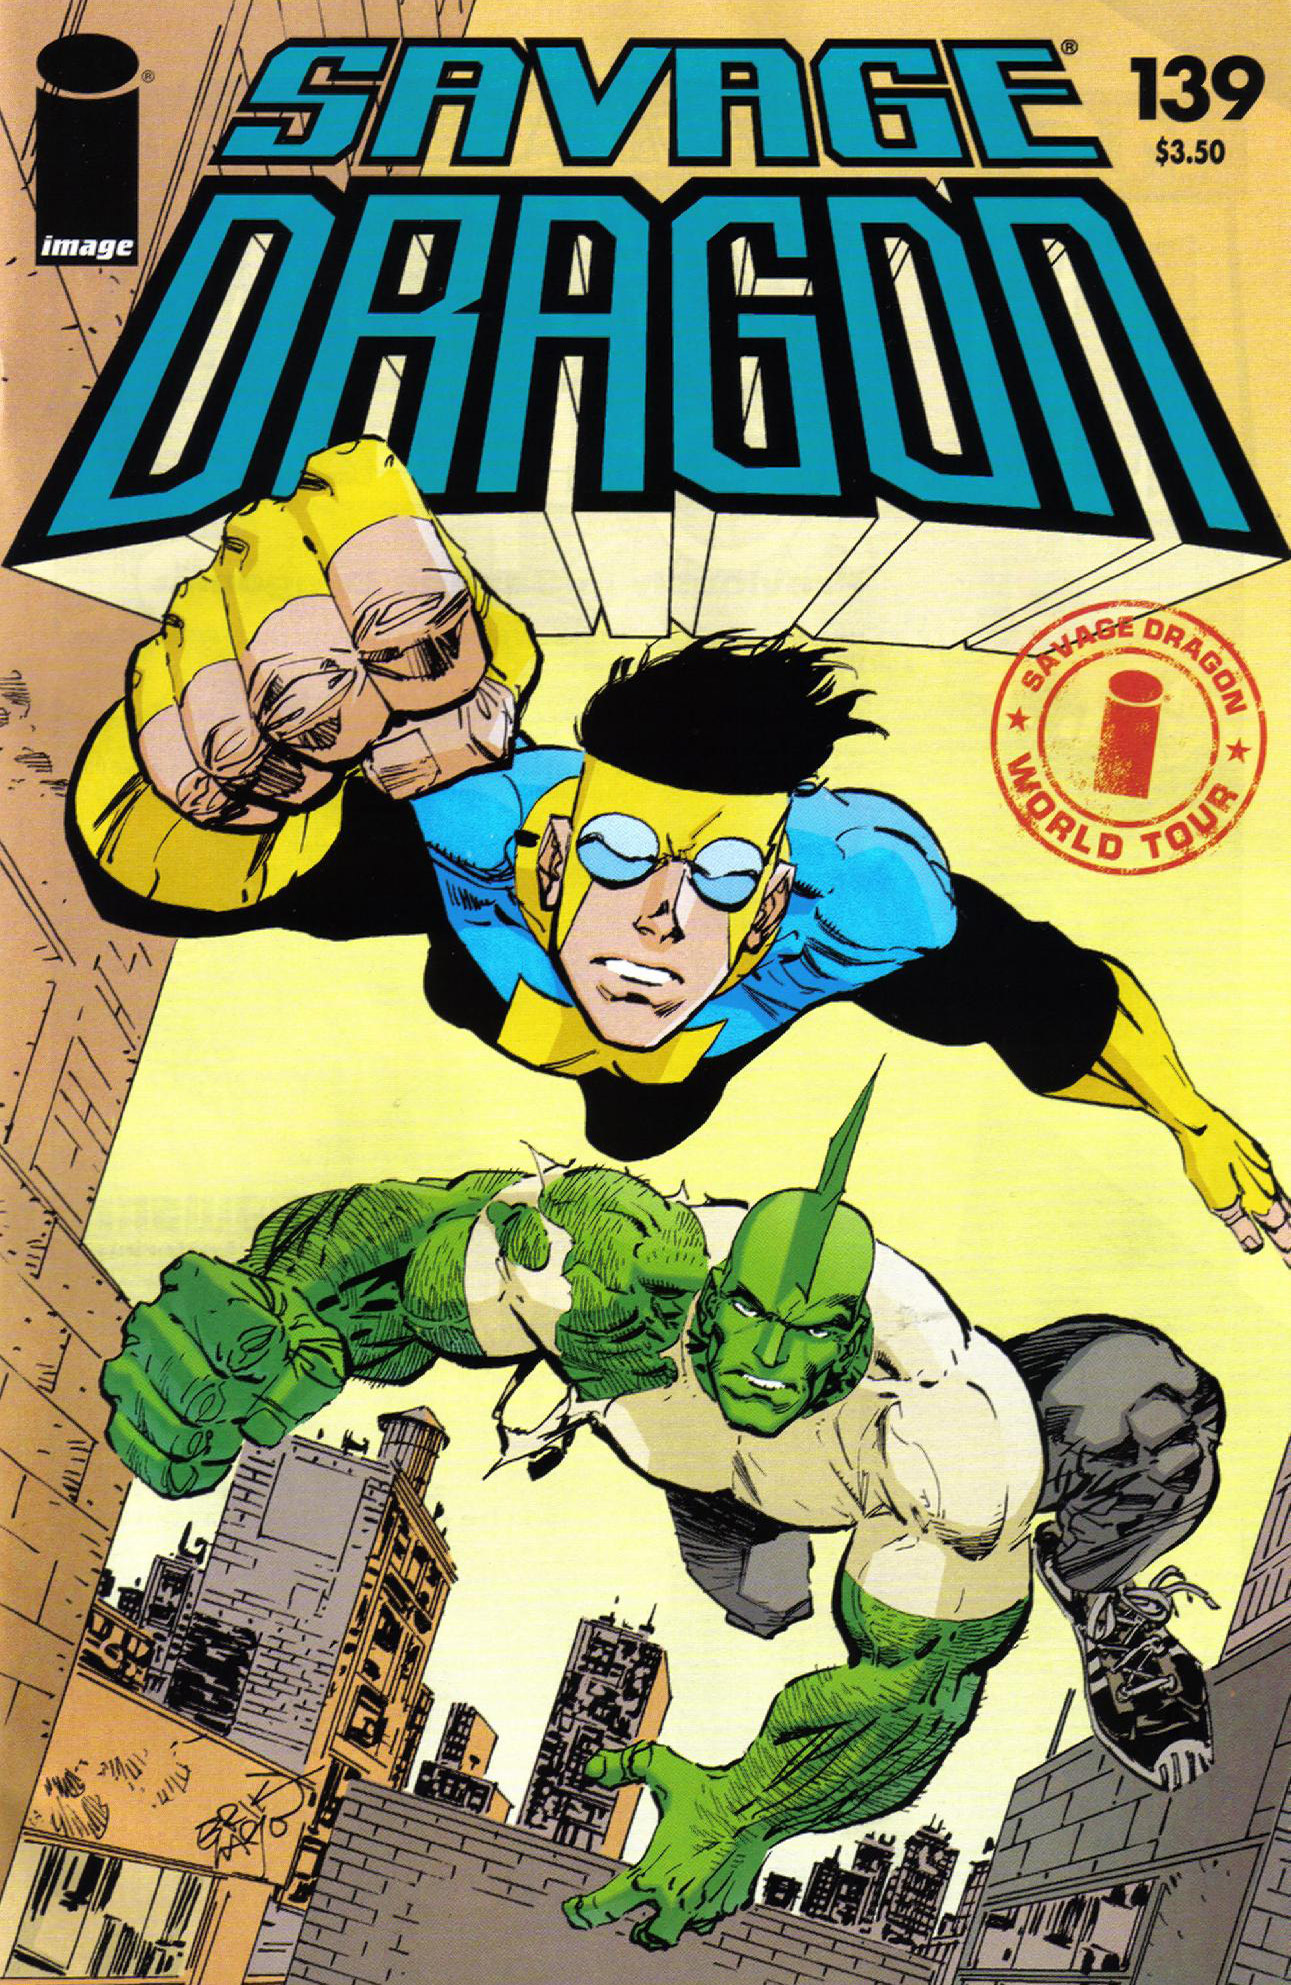 Cover Savage Dragon Vol.2 #139